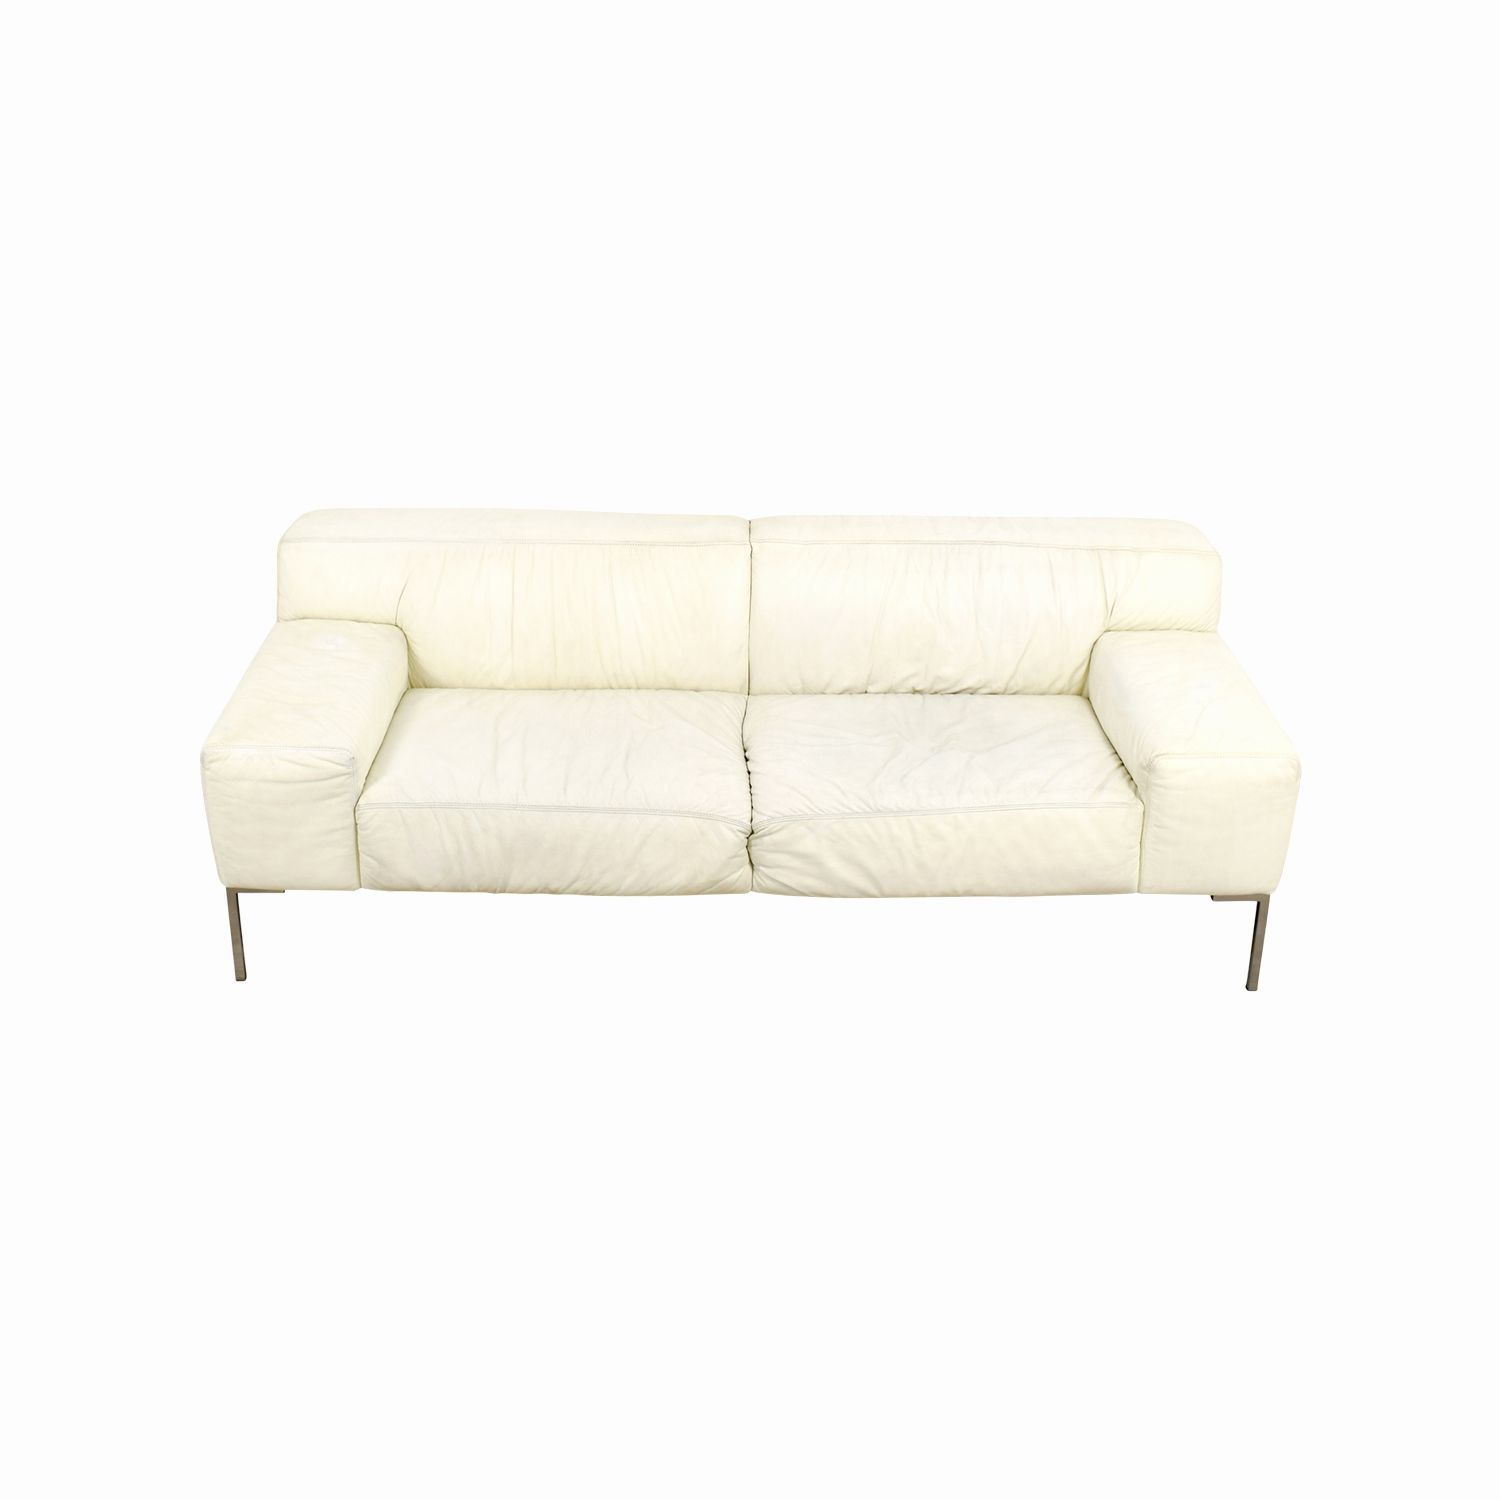 Jensen Sofa Bed Next Fresh Jensen Lewis Sleeper Sofa Art Jensen Lewis Sleeper Sofa